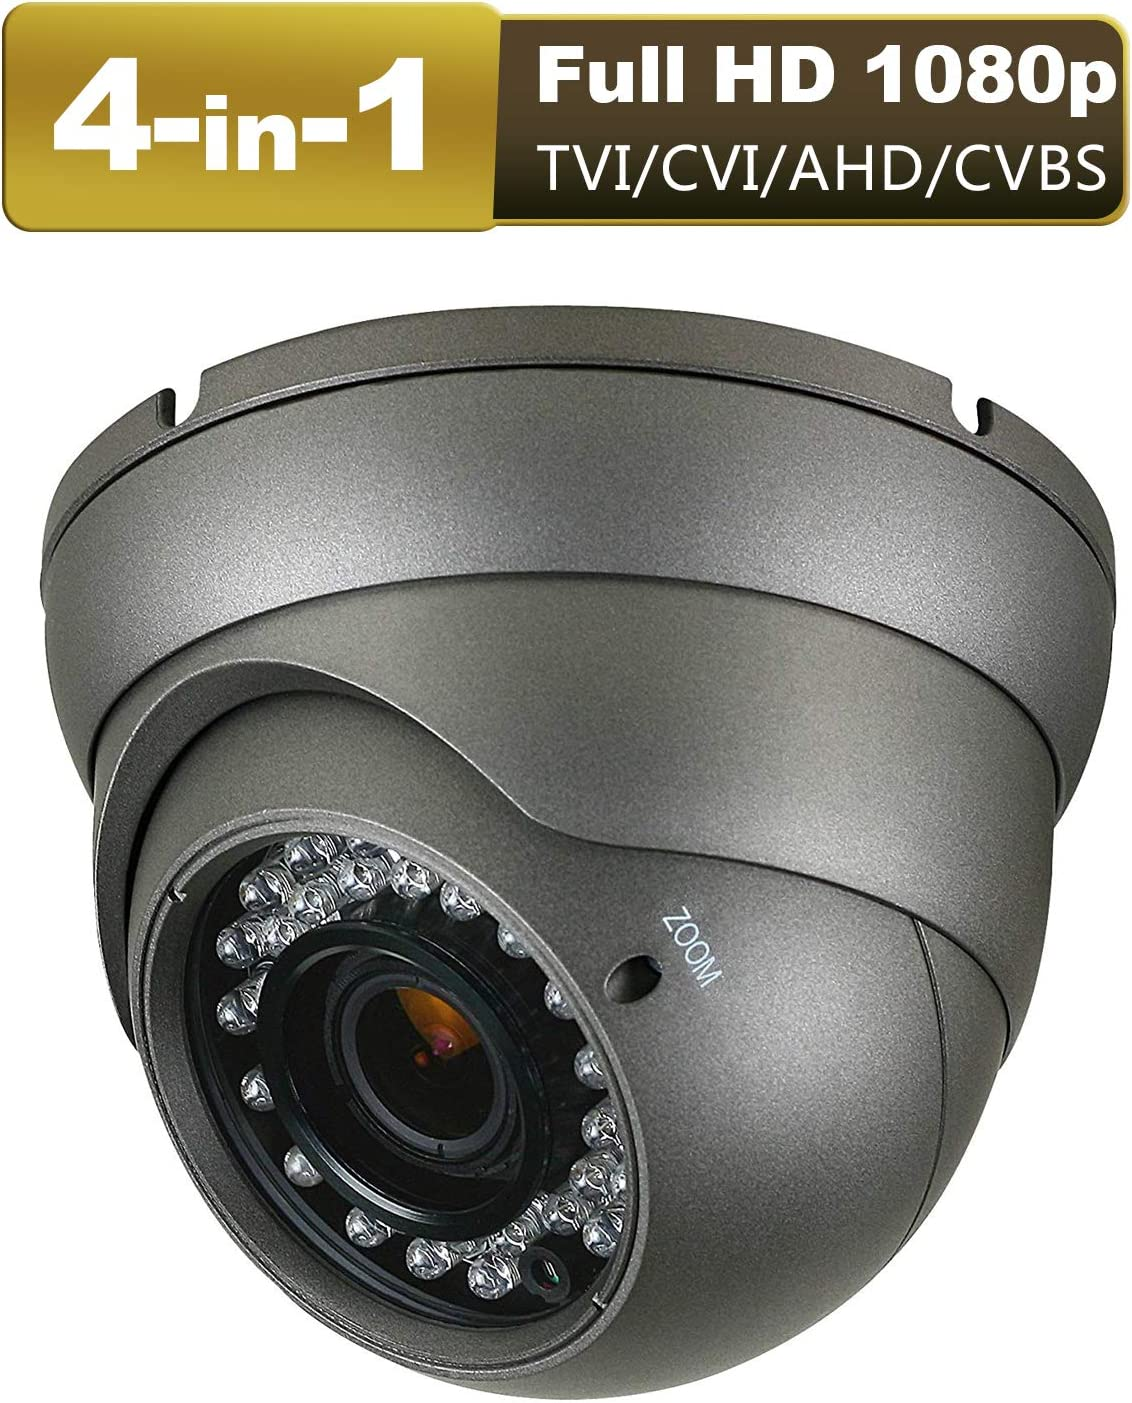 USA New HD TVI 1080P Dome Camera 2MP HDTVI Sony CMOS Varifocal 2.8-12mm 36 IR